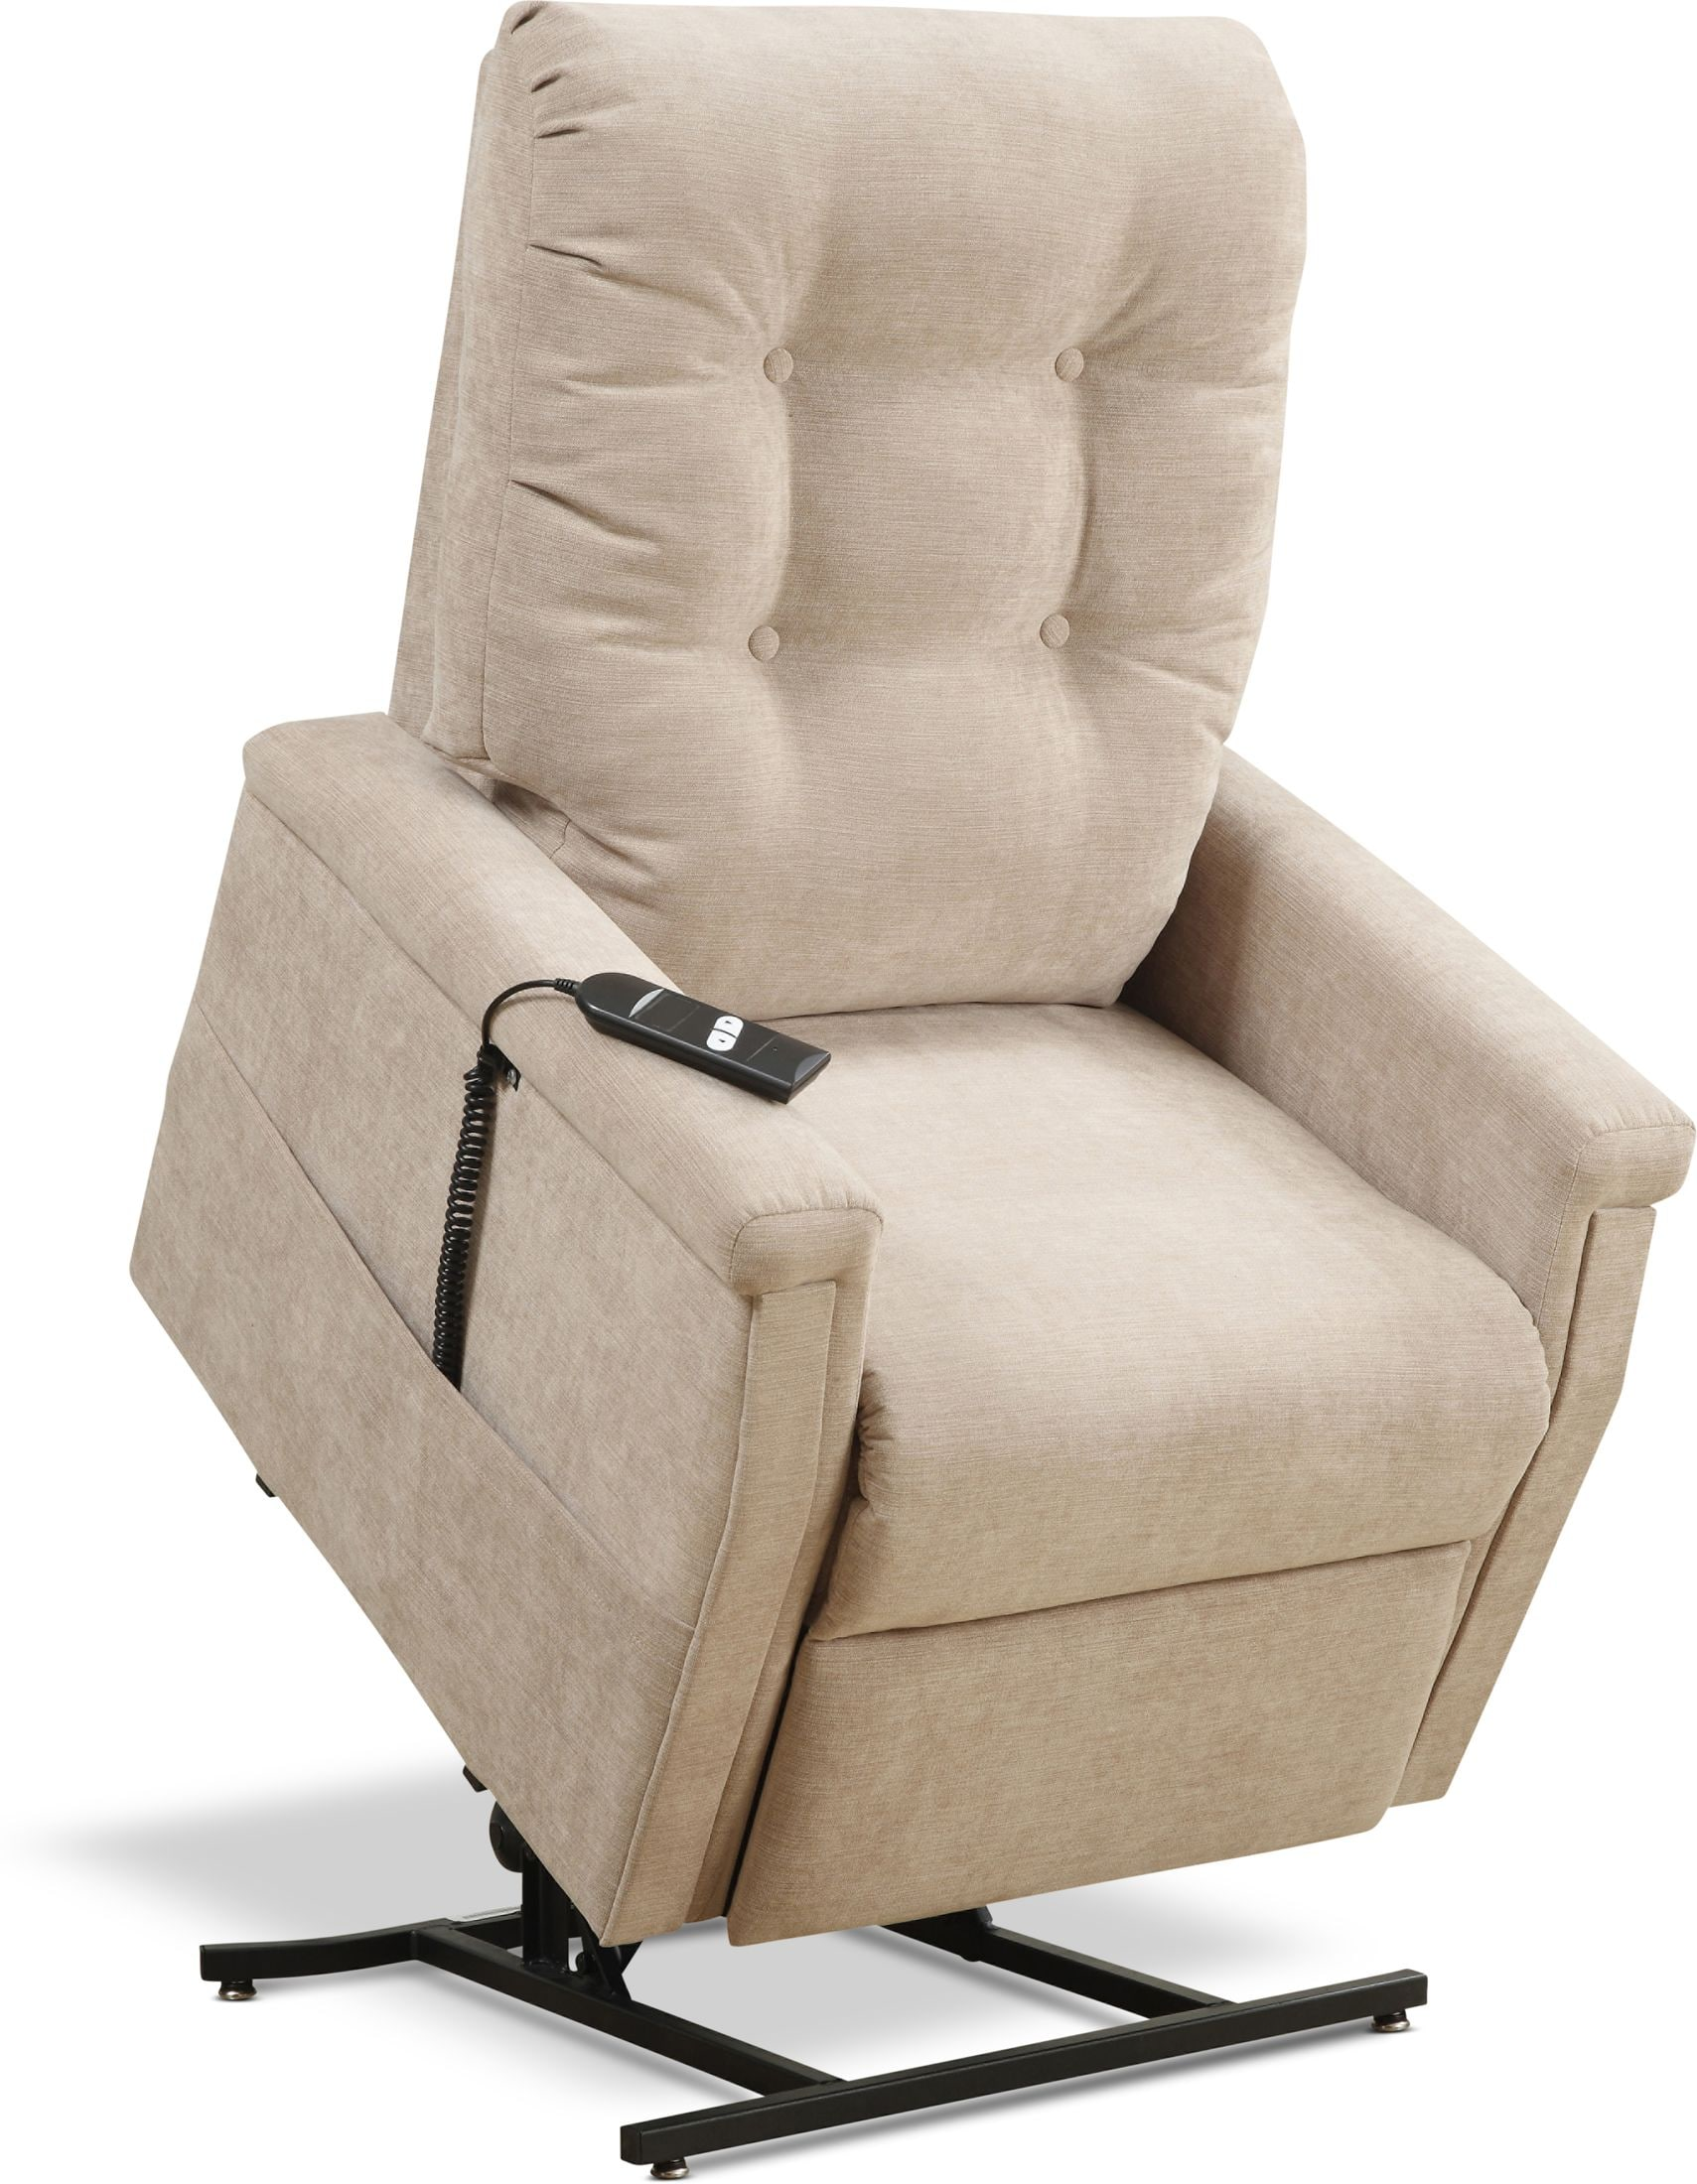 Living Room Furniture - Everett Power Lift Recliner